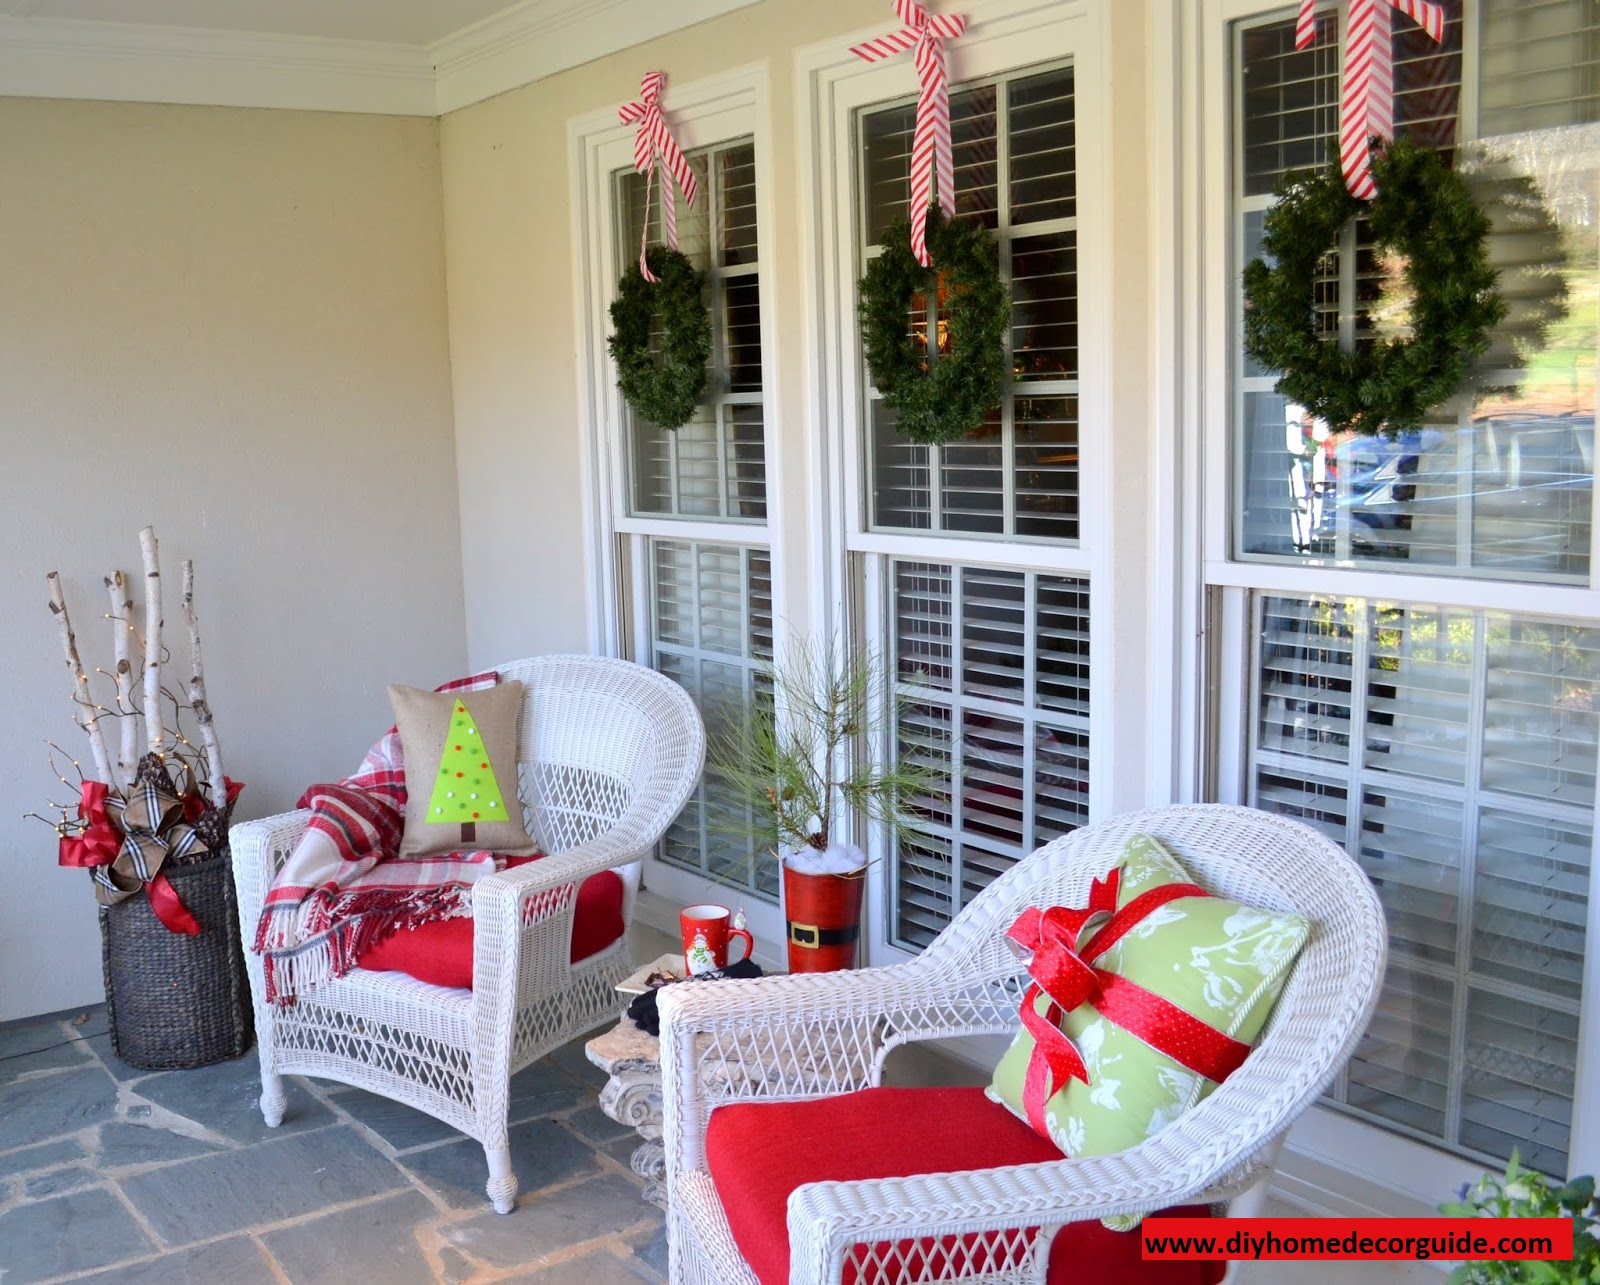 Outdoor Decorating For Christmas 20 diy outdoor christmas decorations ideas 2014